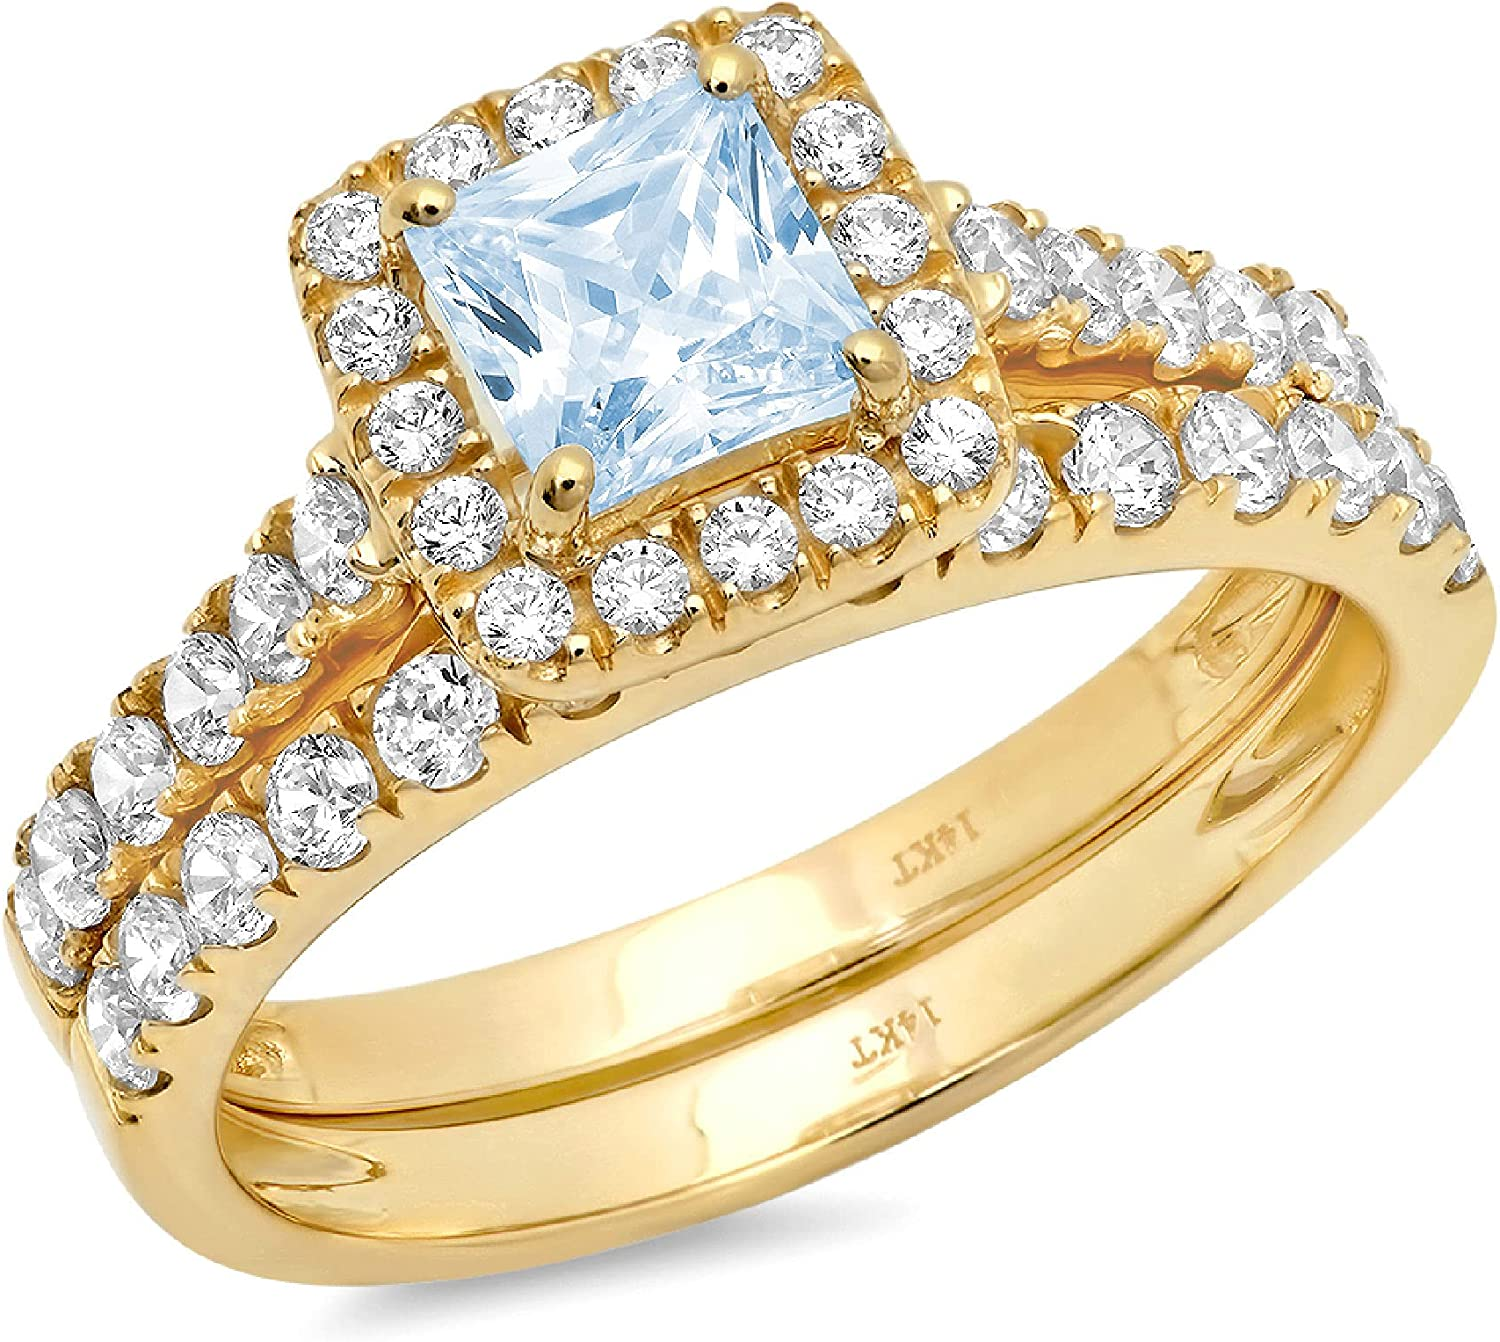 1.60ct Princess Brilliant Cut Halo Pave Solitaire Accent Natural Swiss Blue Topaz Engagement Promise Statement Anniversary Bridal Wedding Ring Band set Solid 18k Yellow Gold